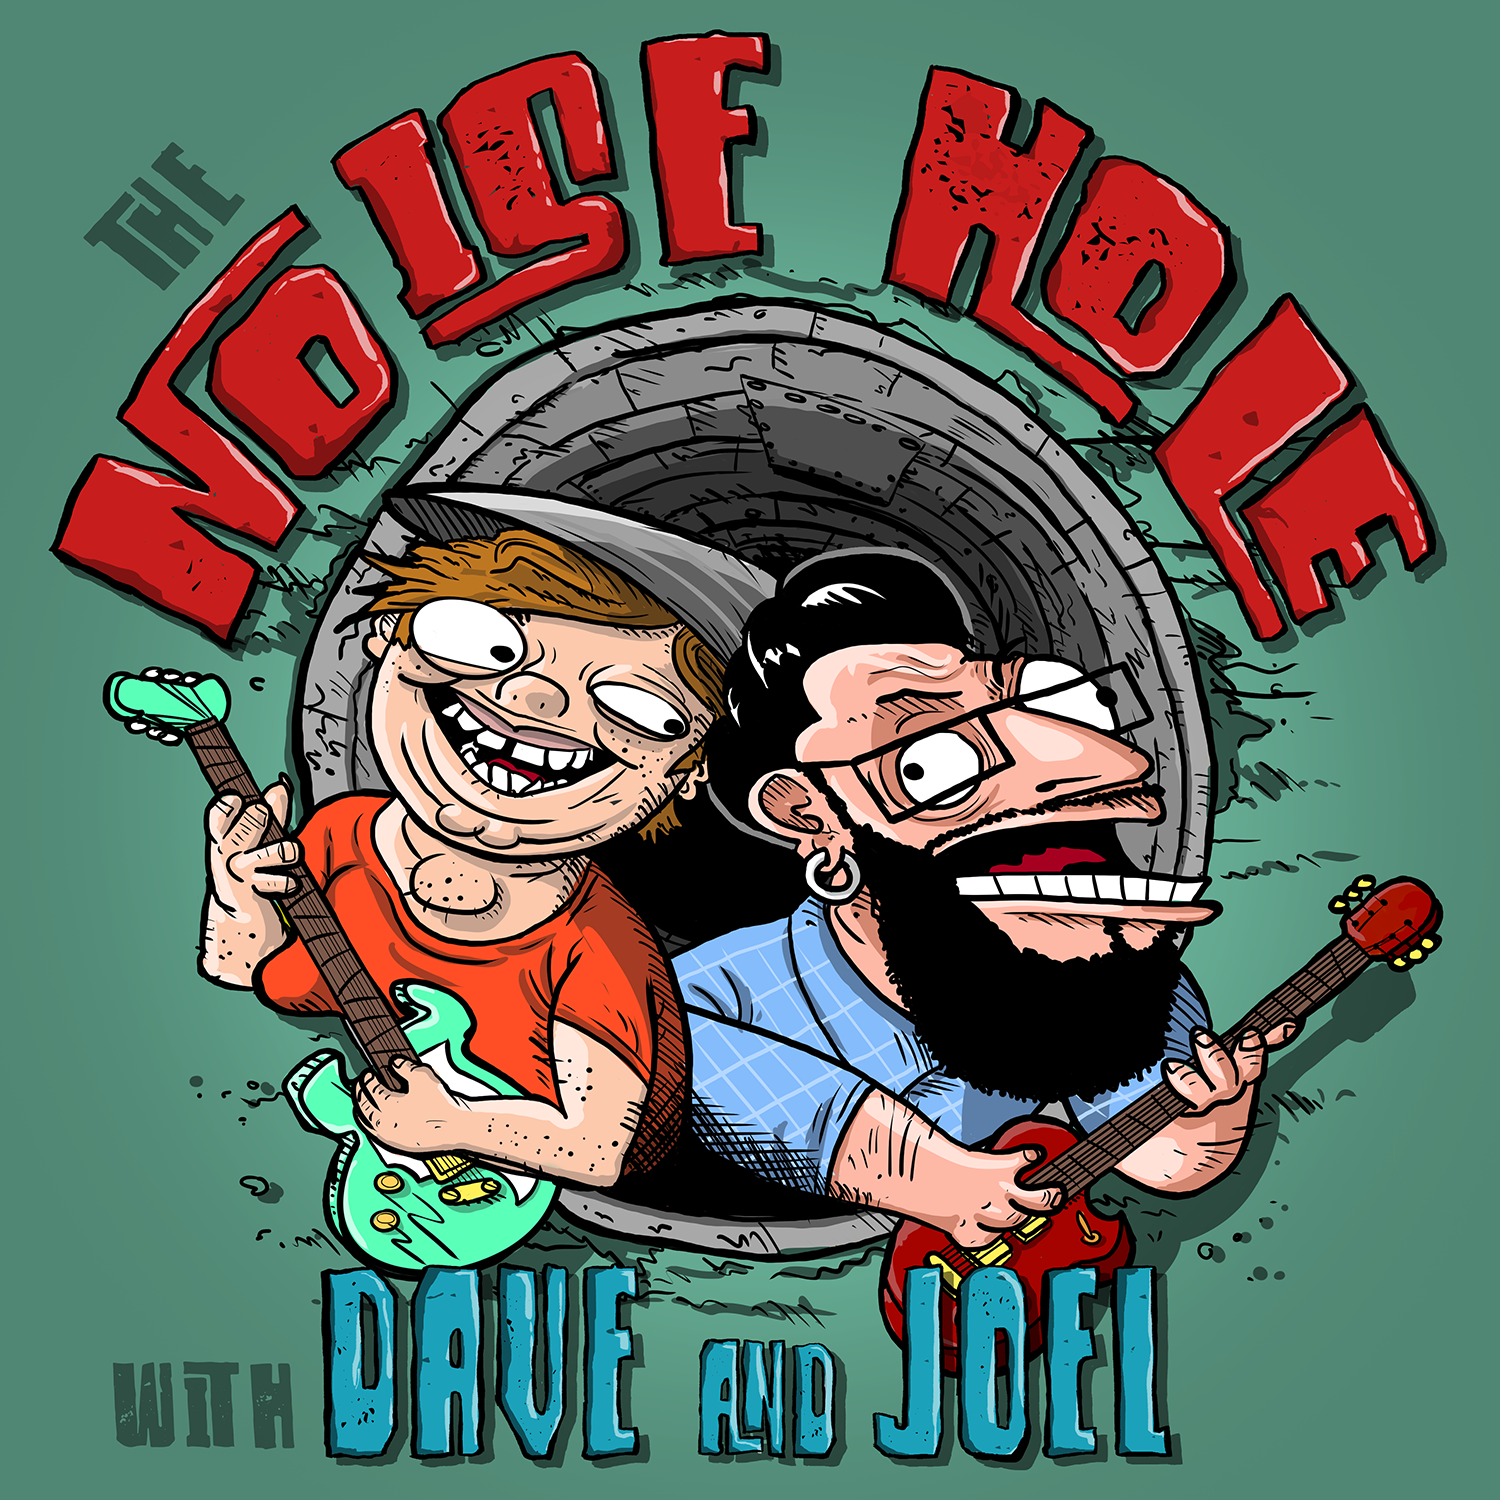 The Noise Hole with Dave & Joel - A rock and roll comedy podcast featuring Joel Watson and Dave McElfatrick of Cyanide & Happiness